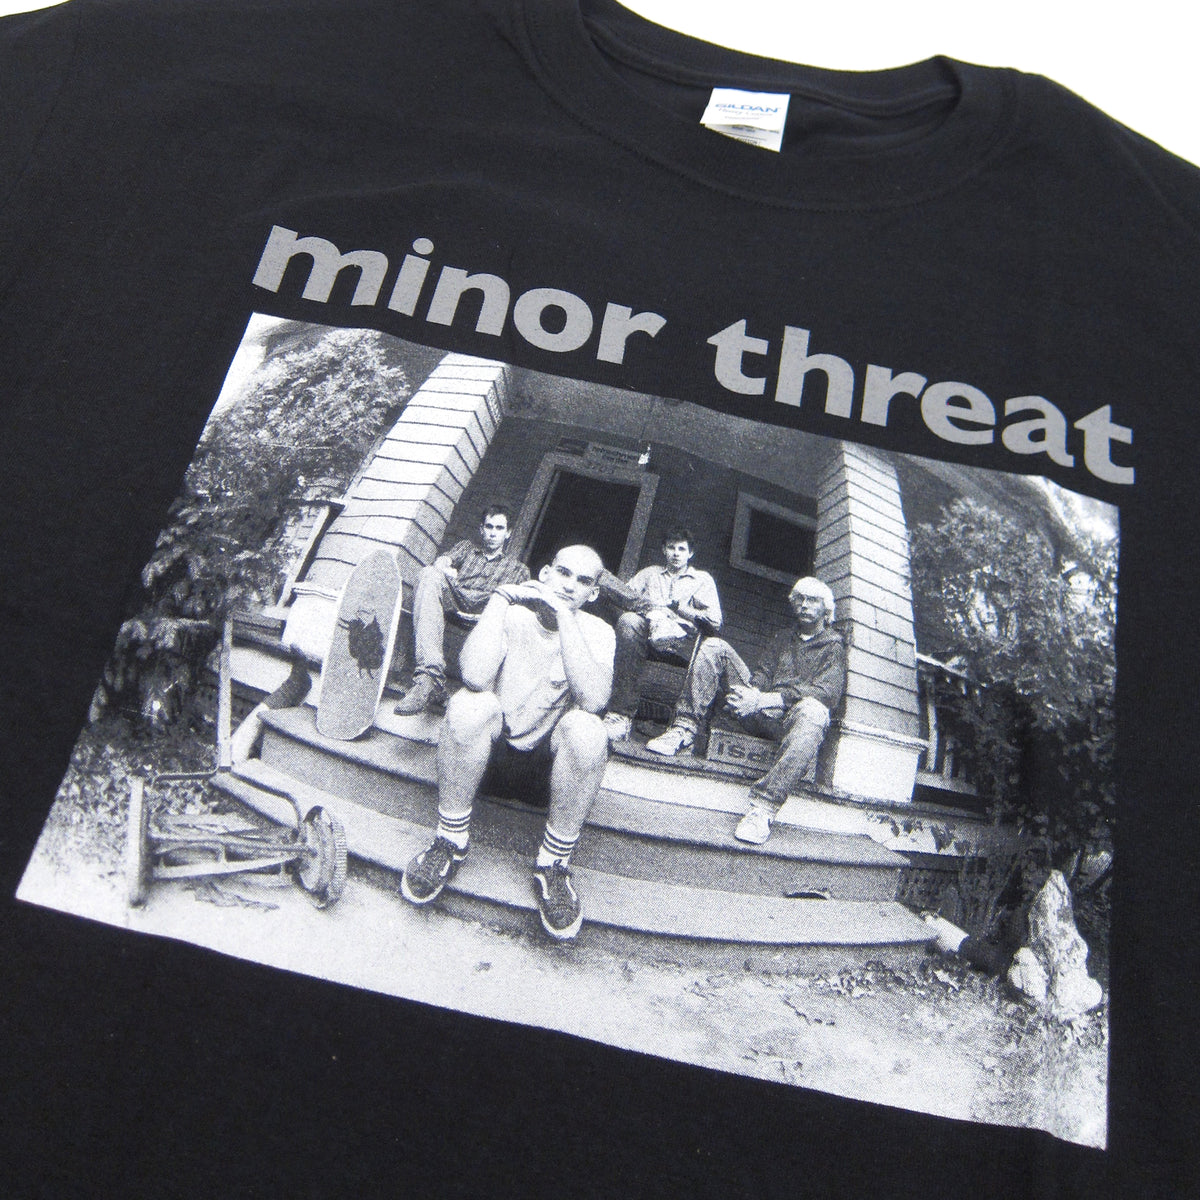 Minor Threat: Salad Days Shirt - Black